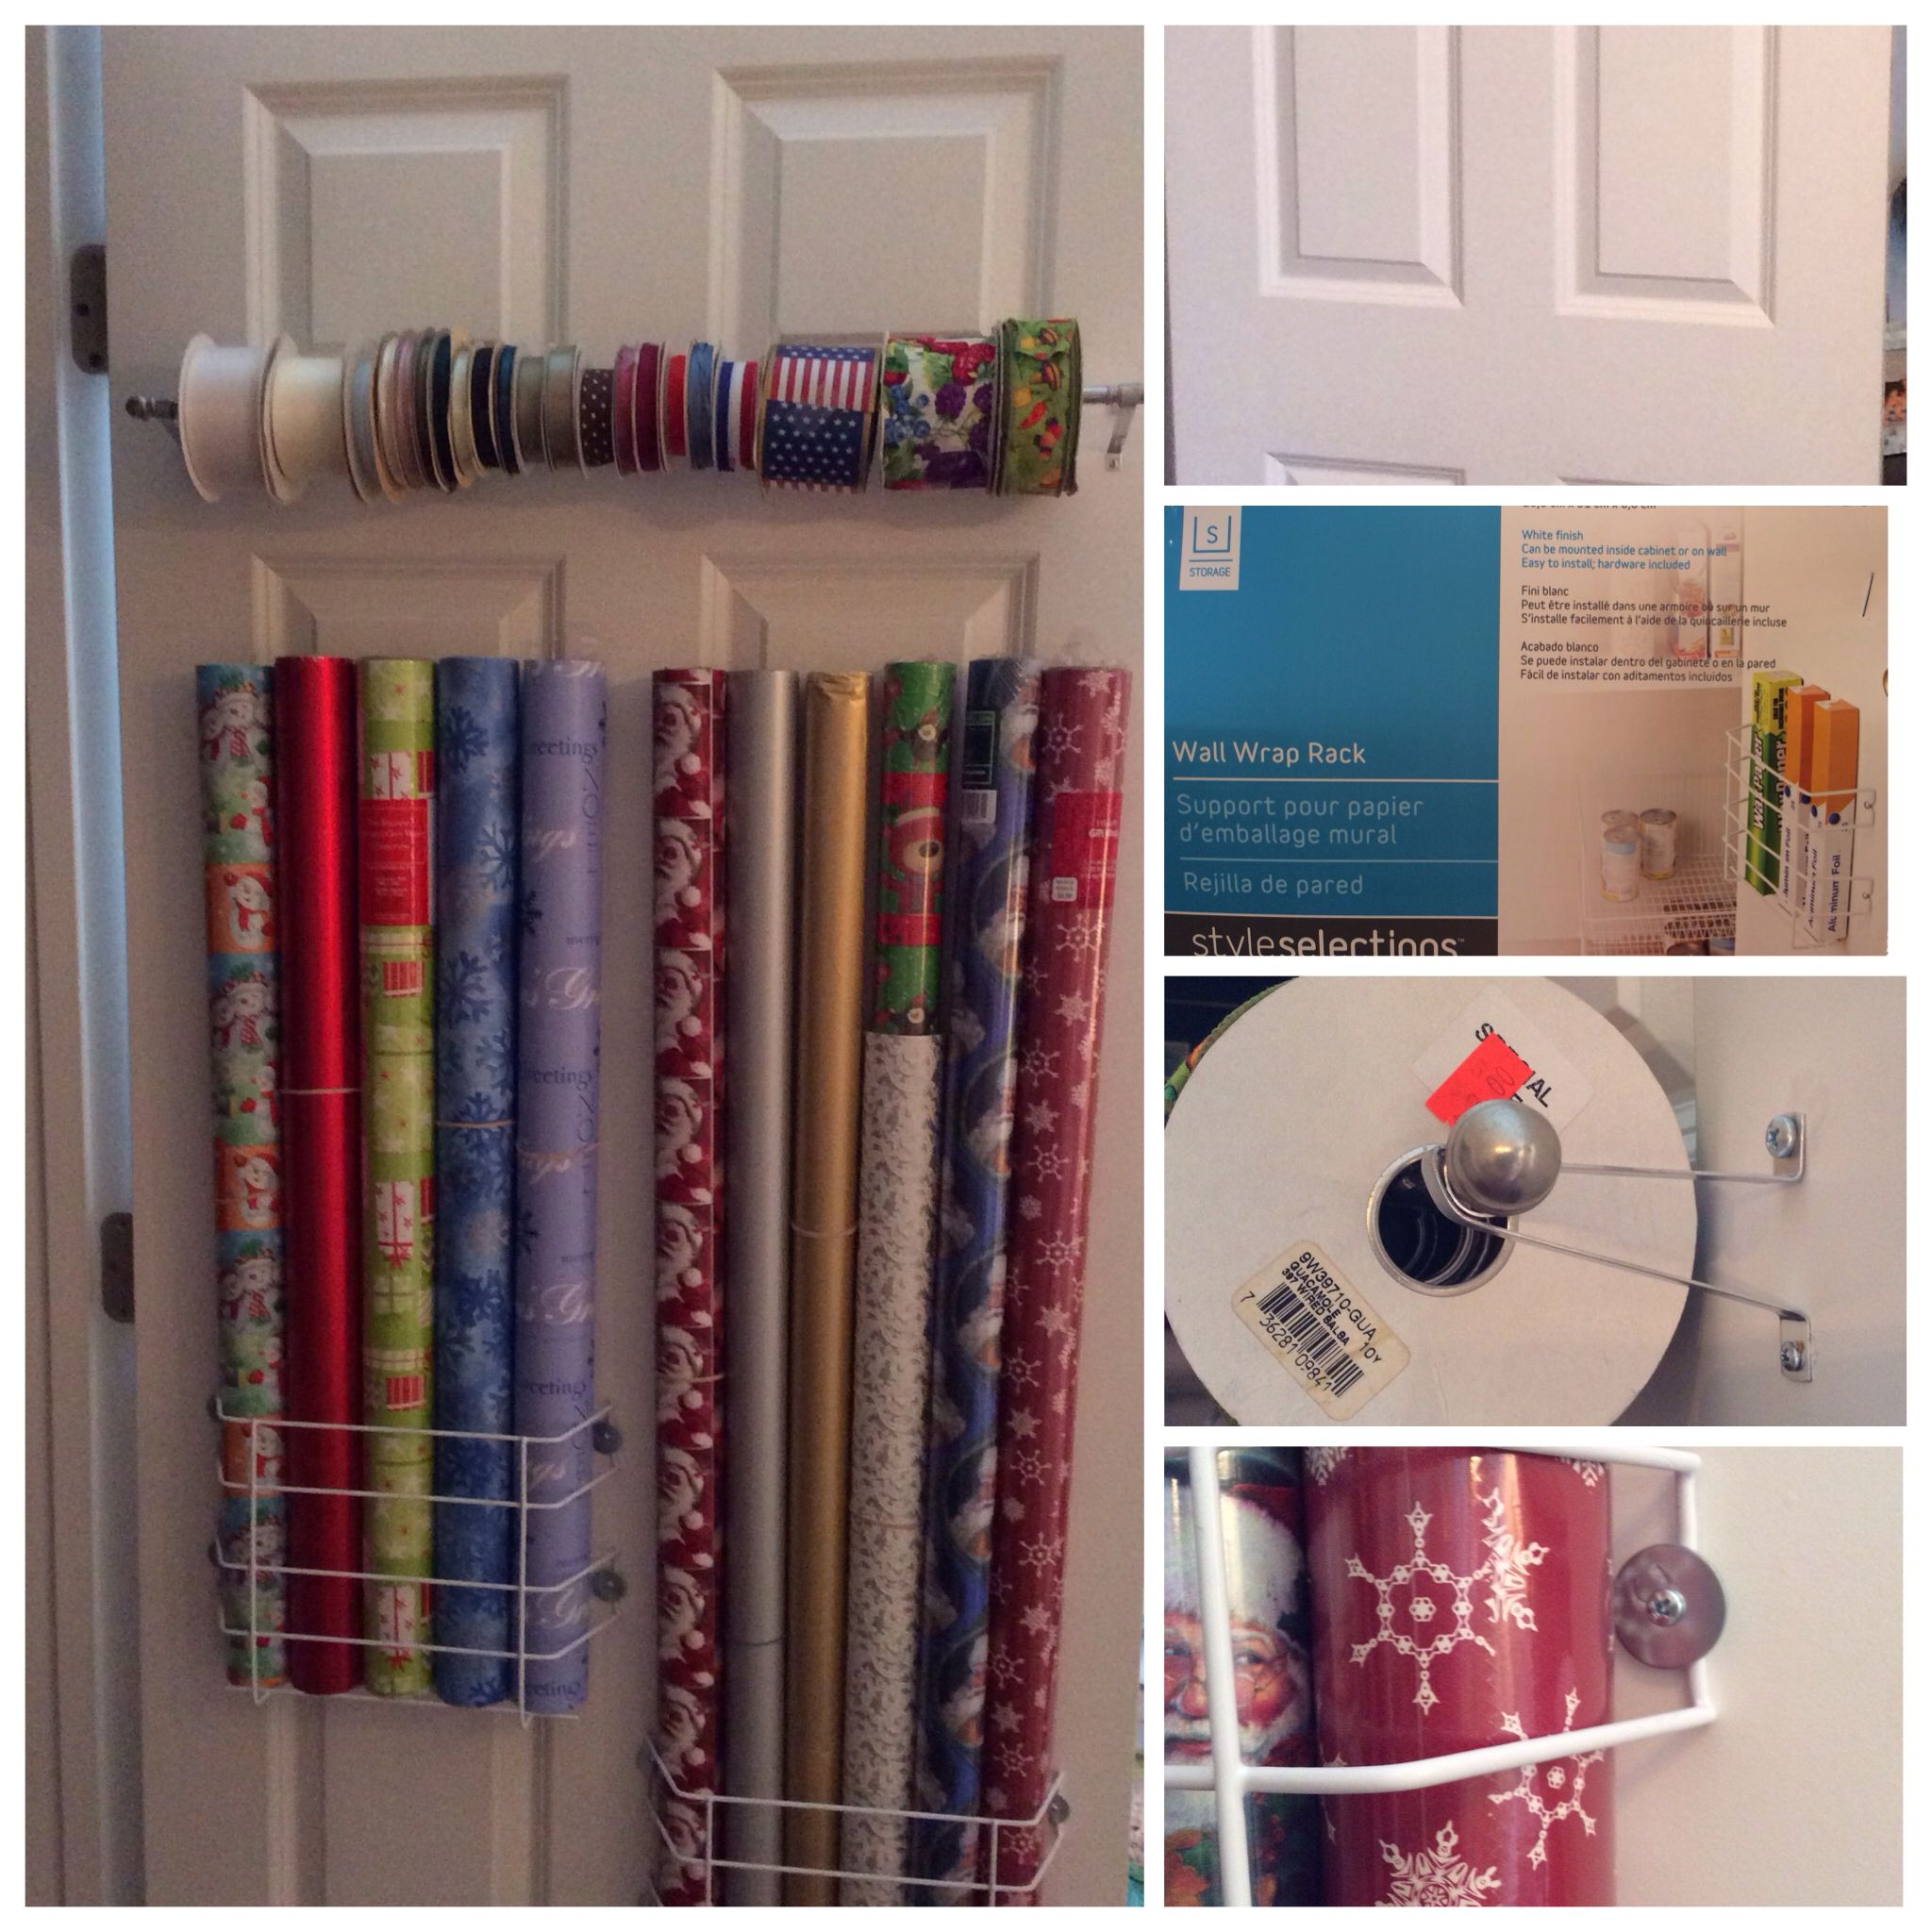 Closet Door Wrapping Paper Organization For Under $15.00. 2/racks From  Loweu0027s For Under